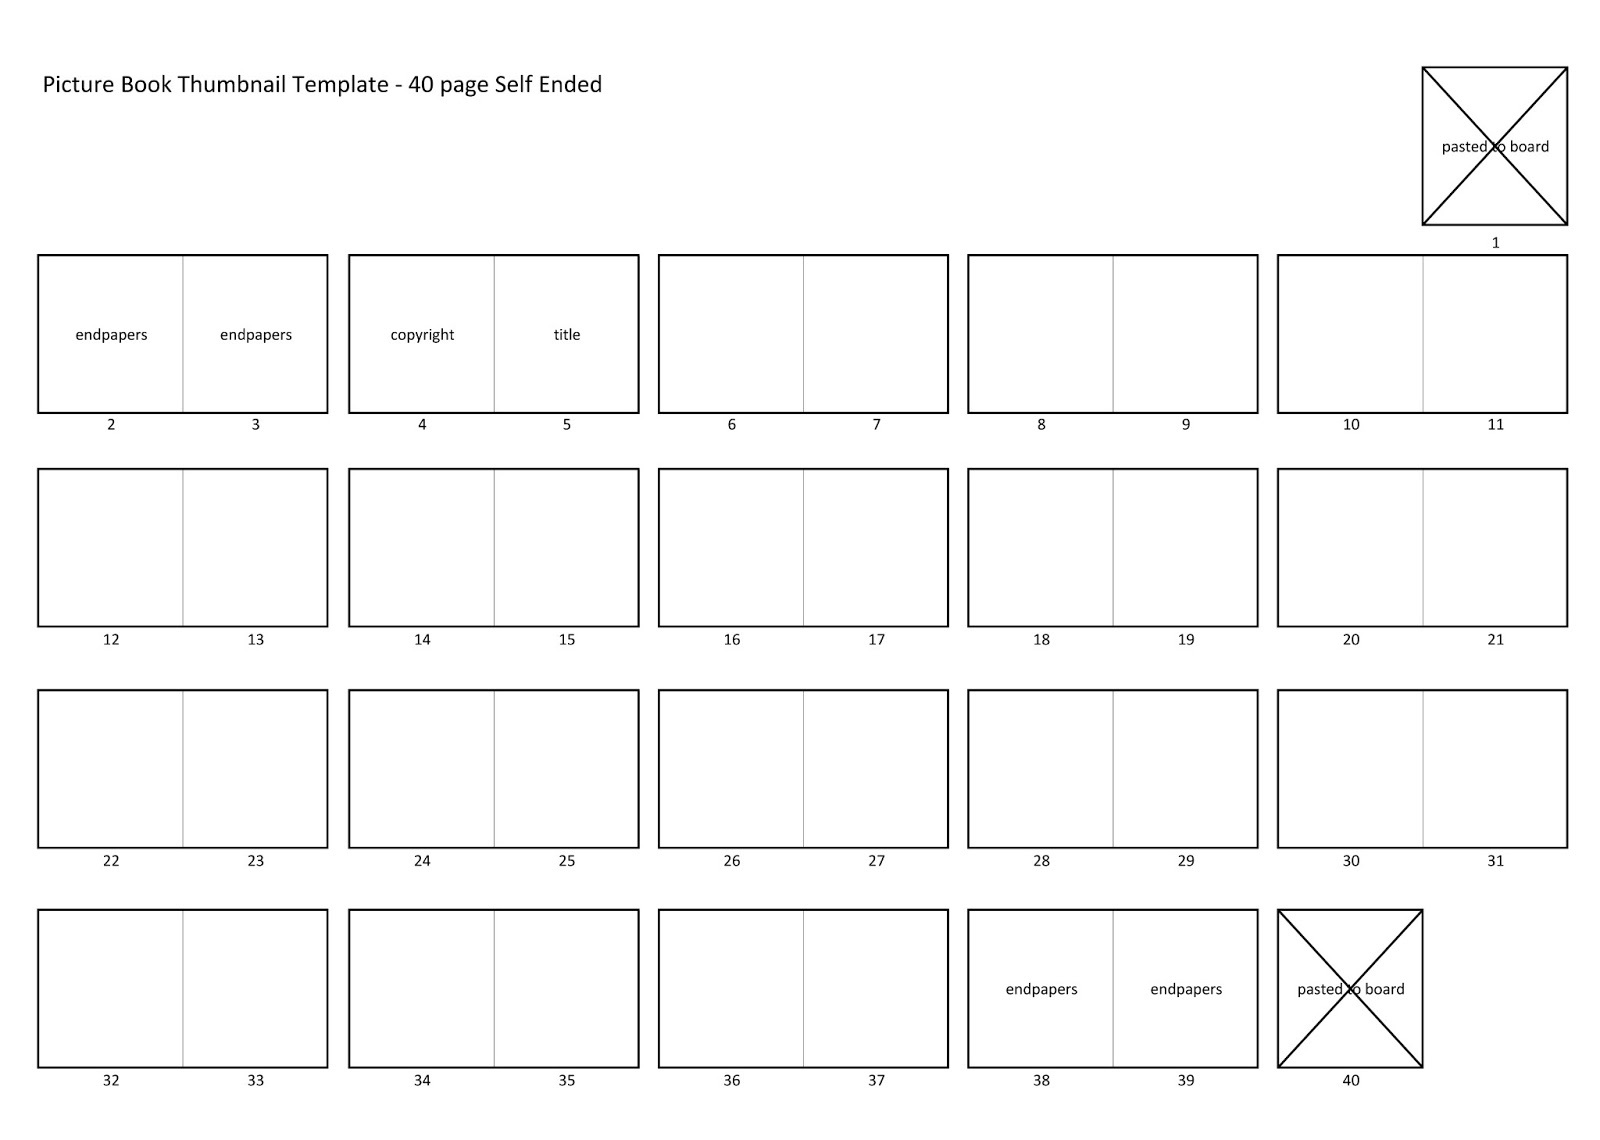 ArtGhost: 40 page self ended picture book thumbnail template